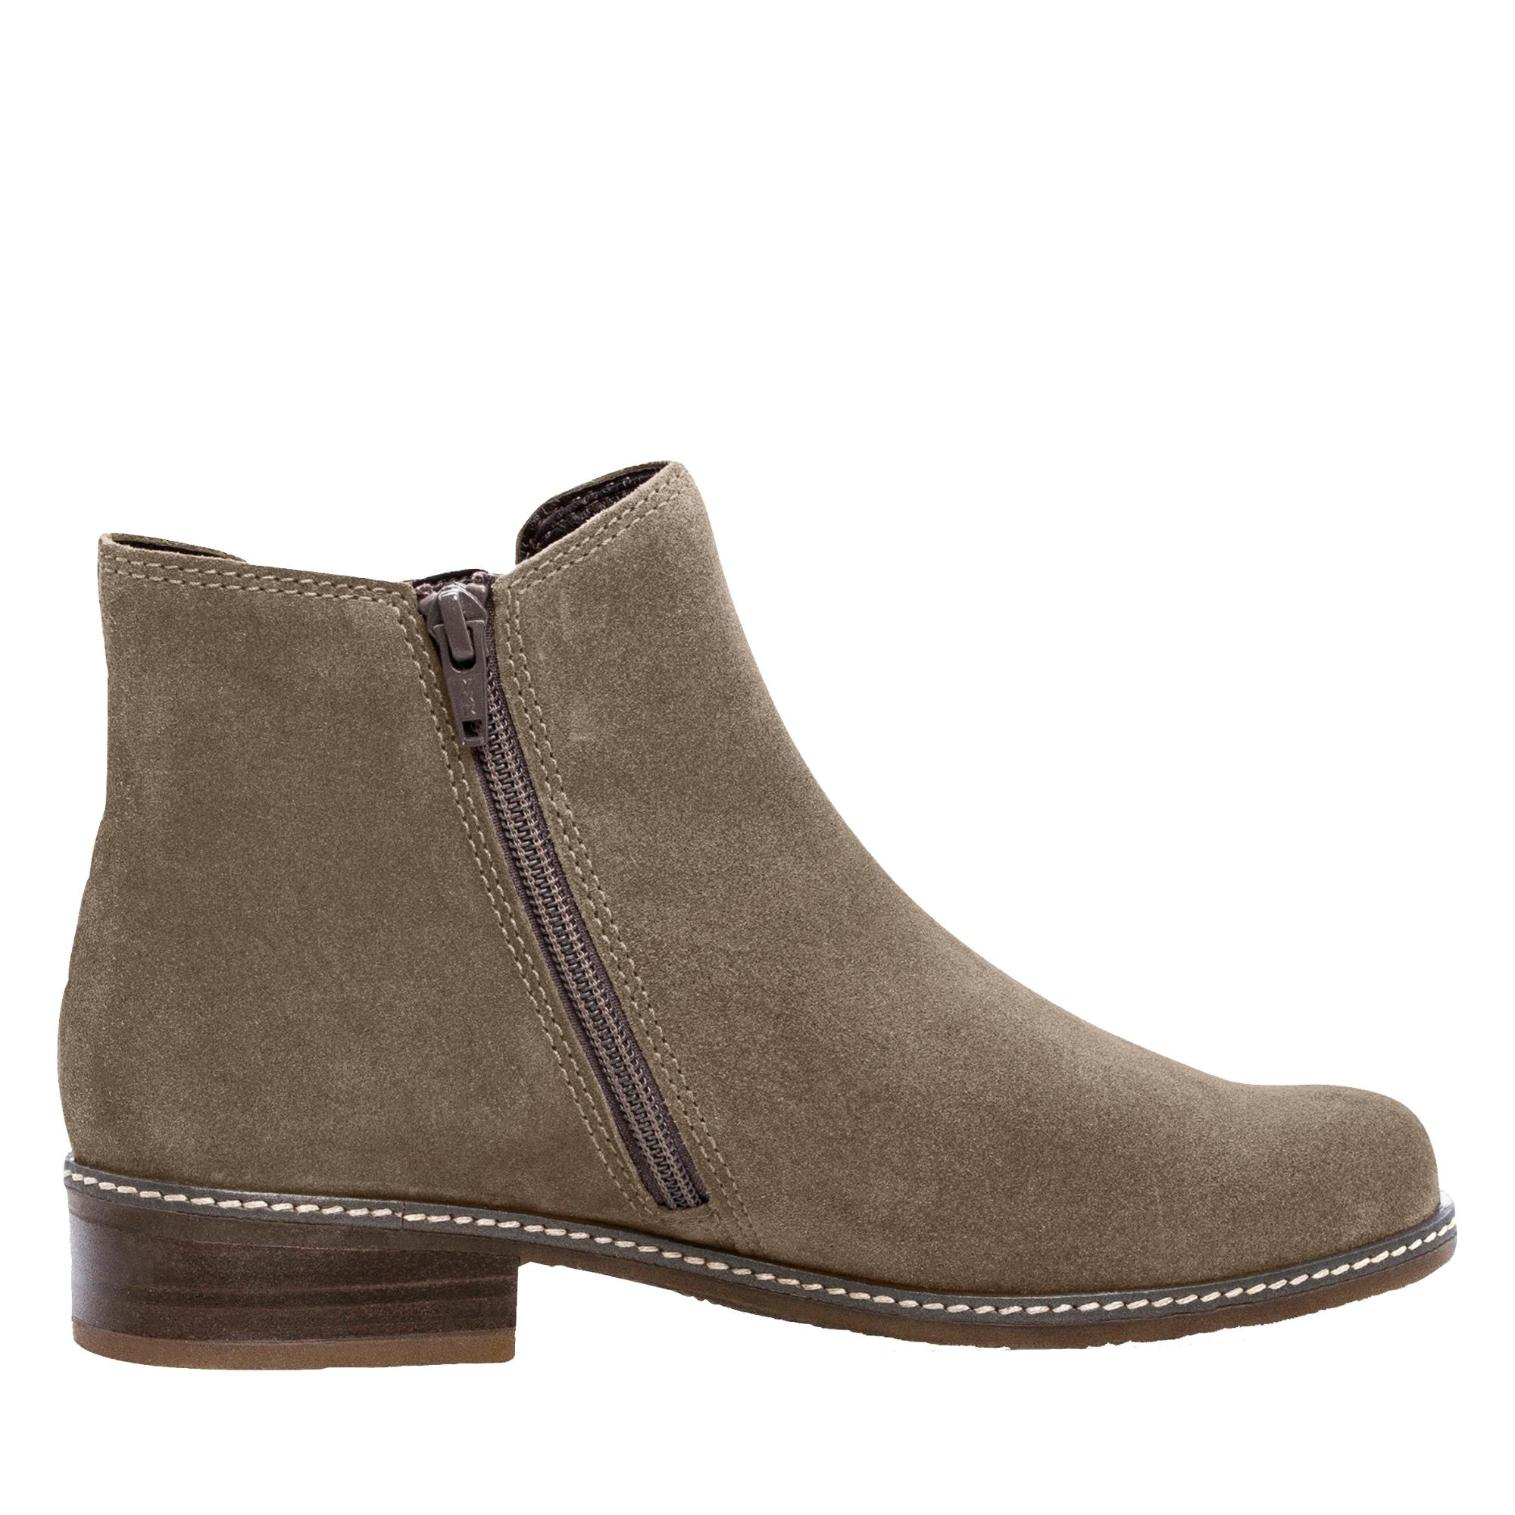 Gabor Comfort Chelsea Boots in Farbe Farbe Farbe beige günstig online kaufen d9aac9